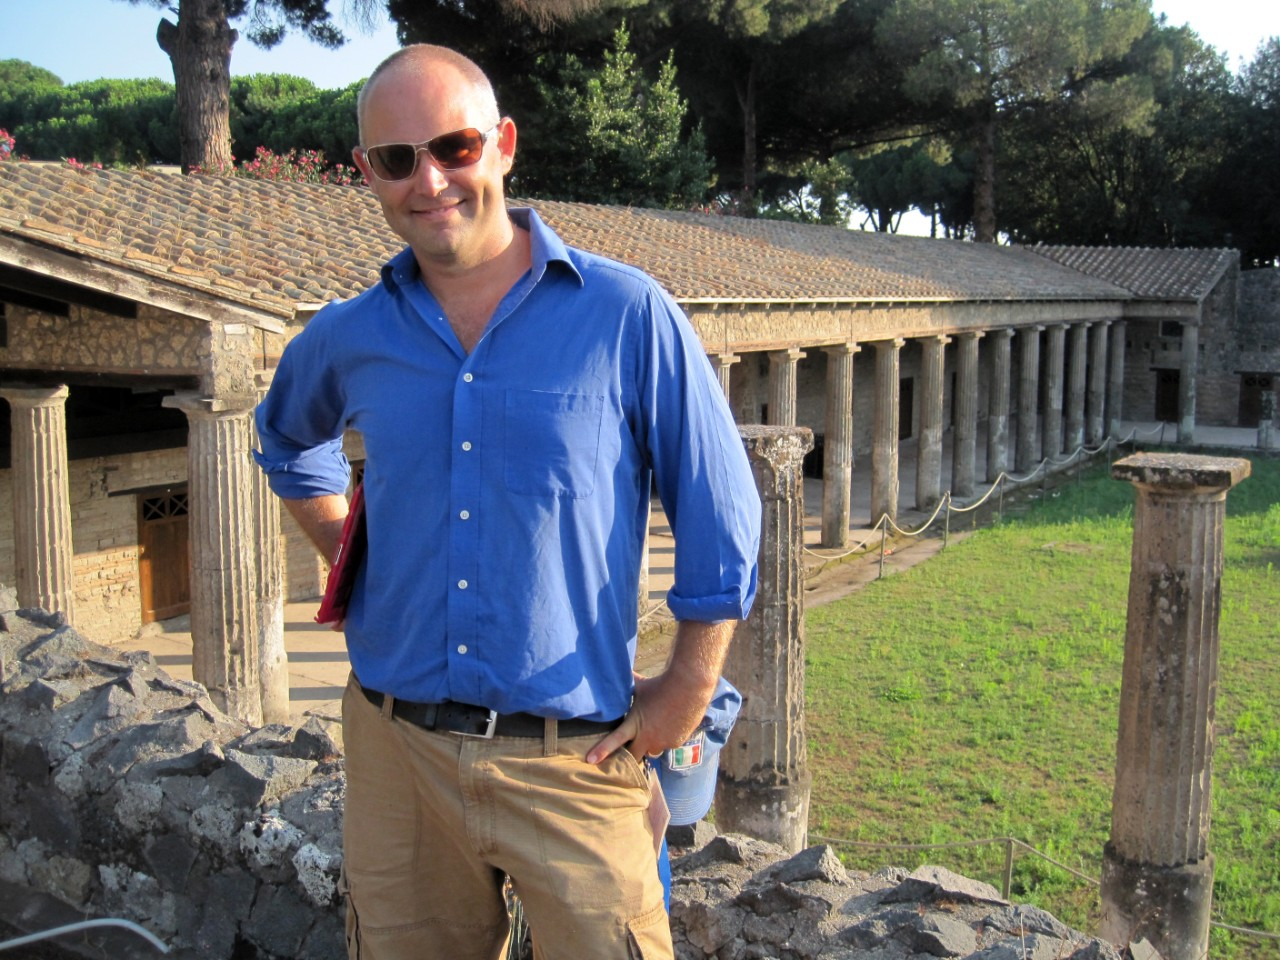 A man in a blue shirt and khakis stands in front of Roman ruins